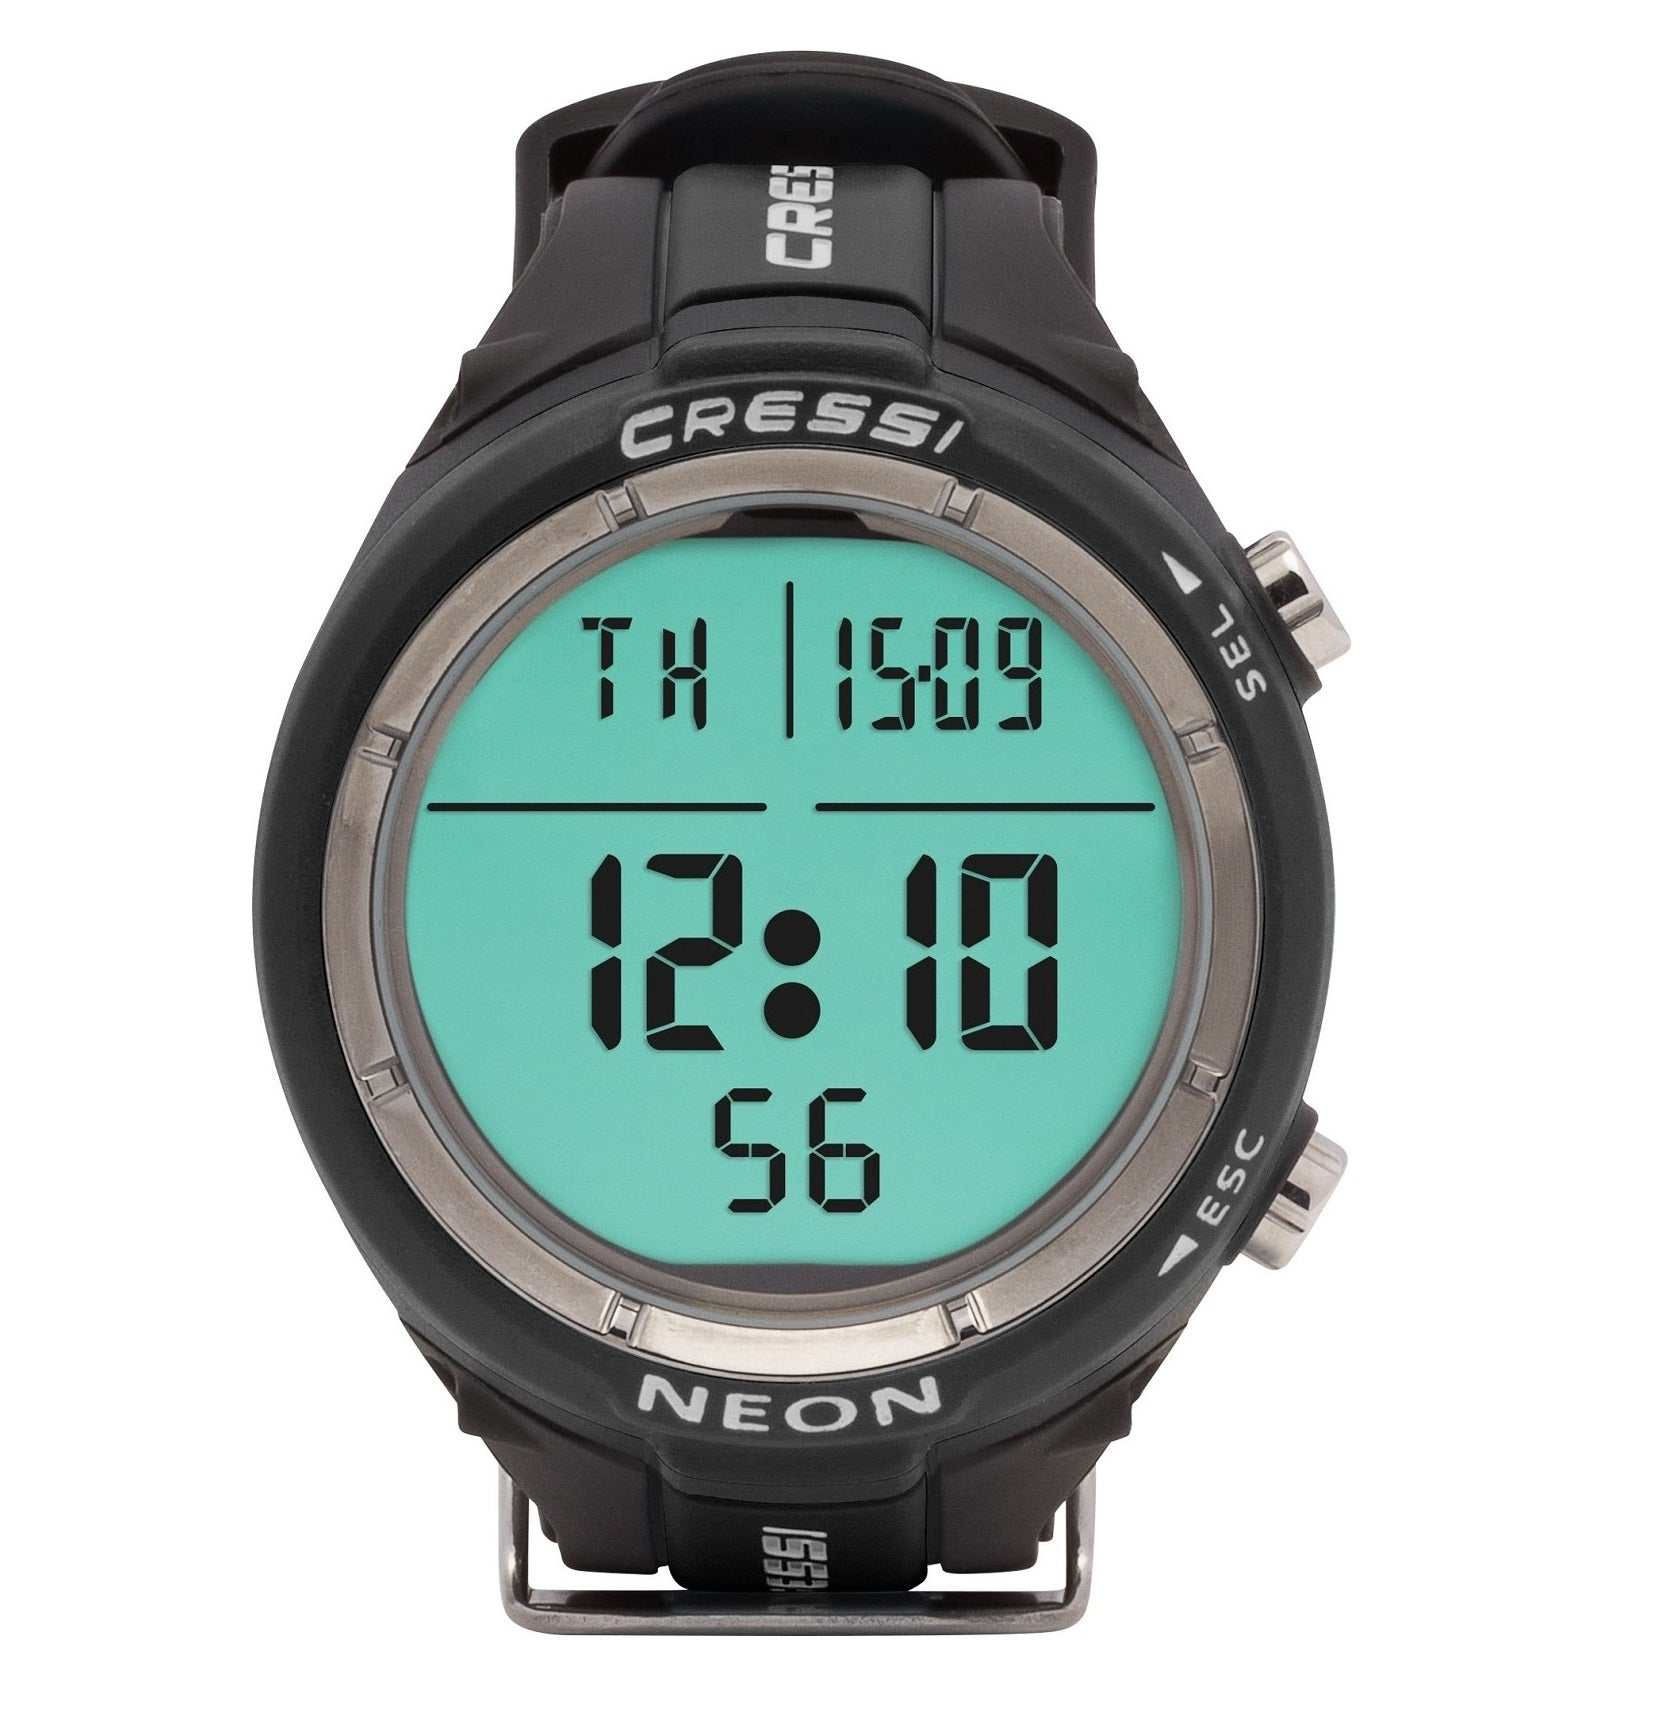 Cressi Neon Dive Watch Computer